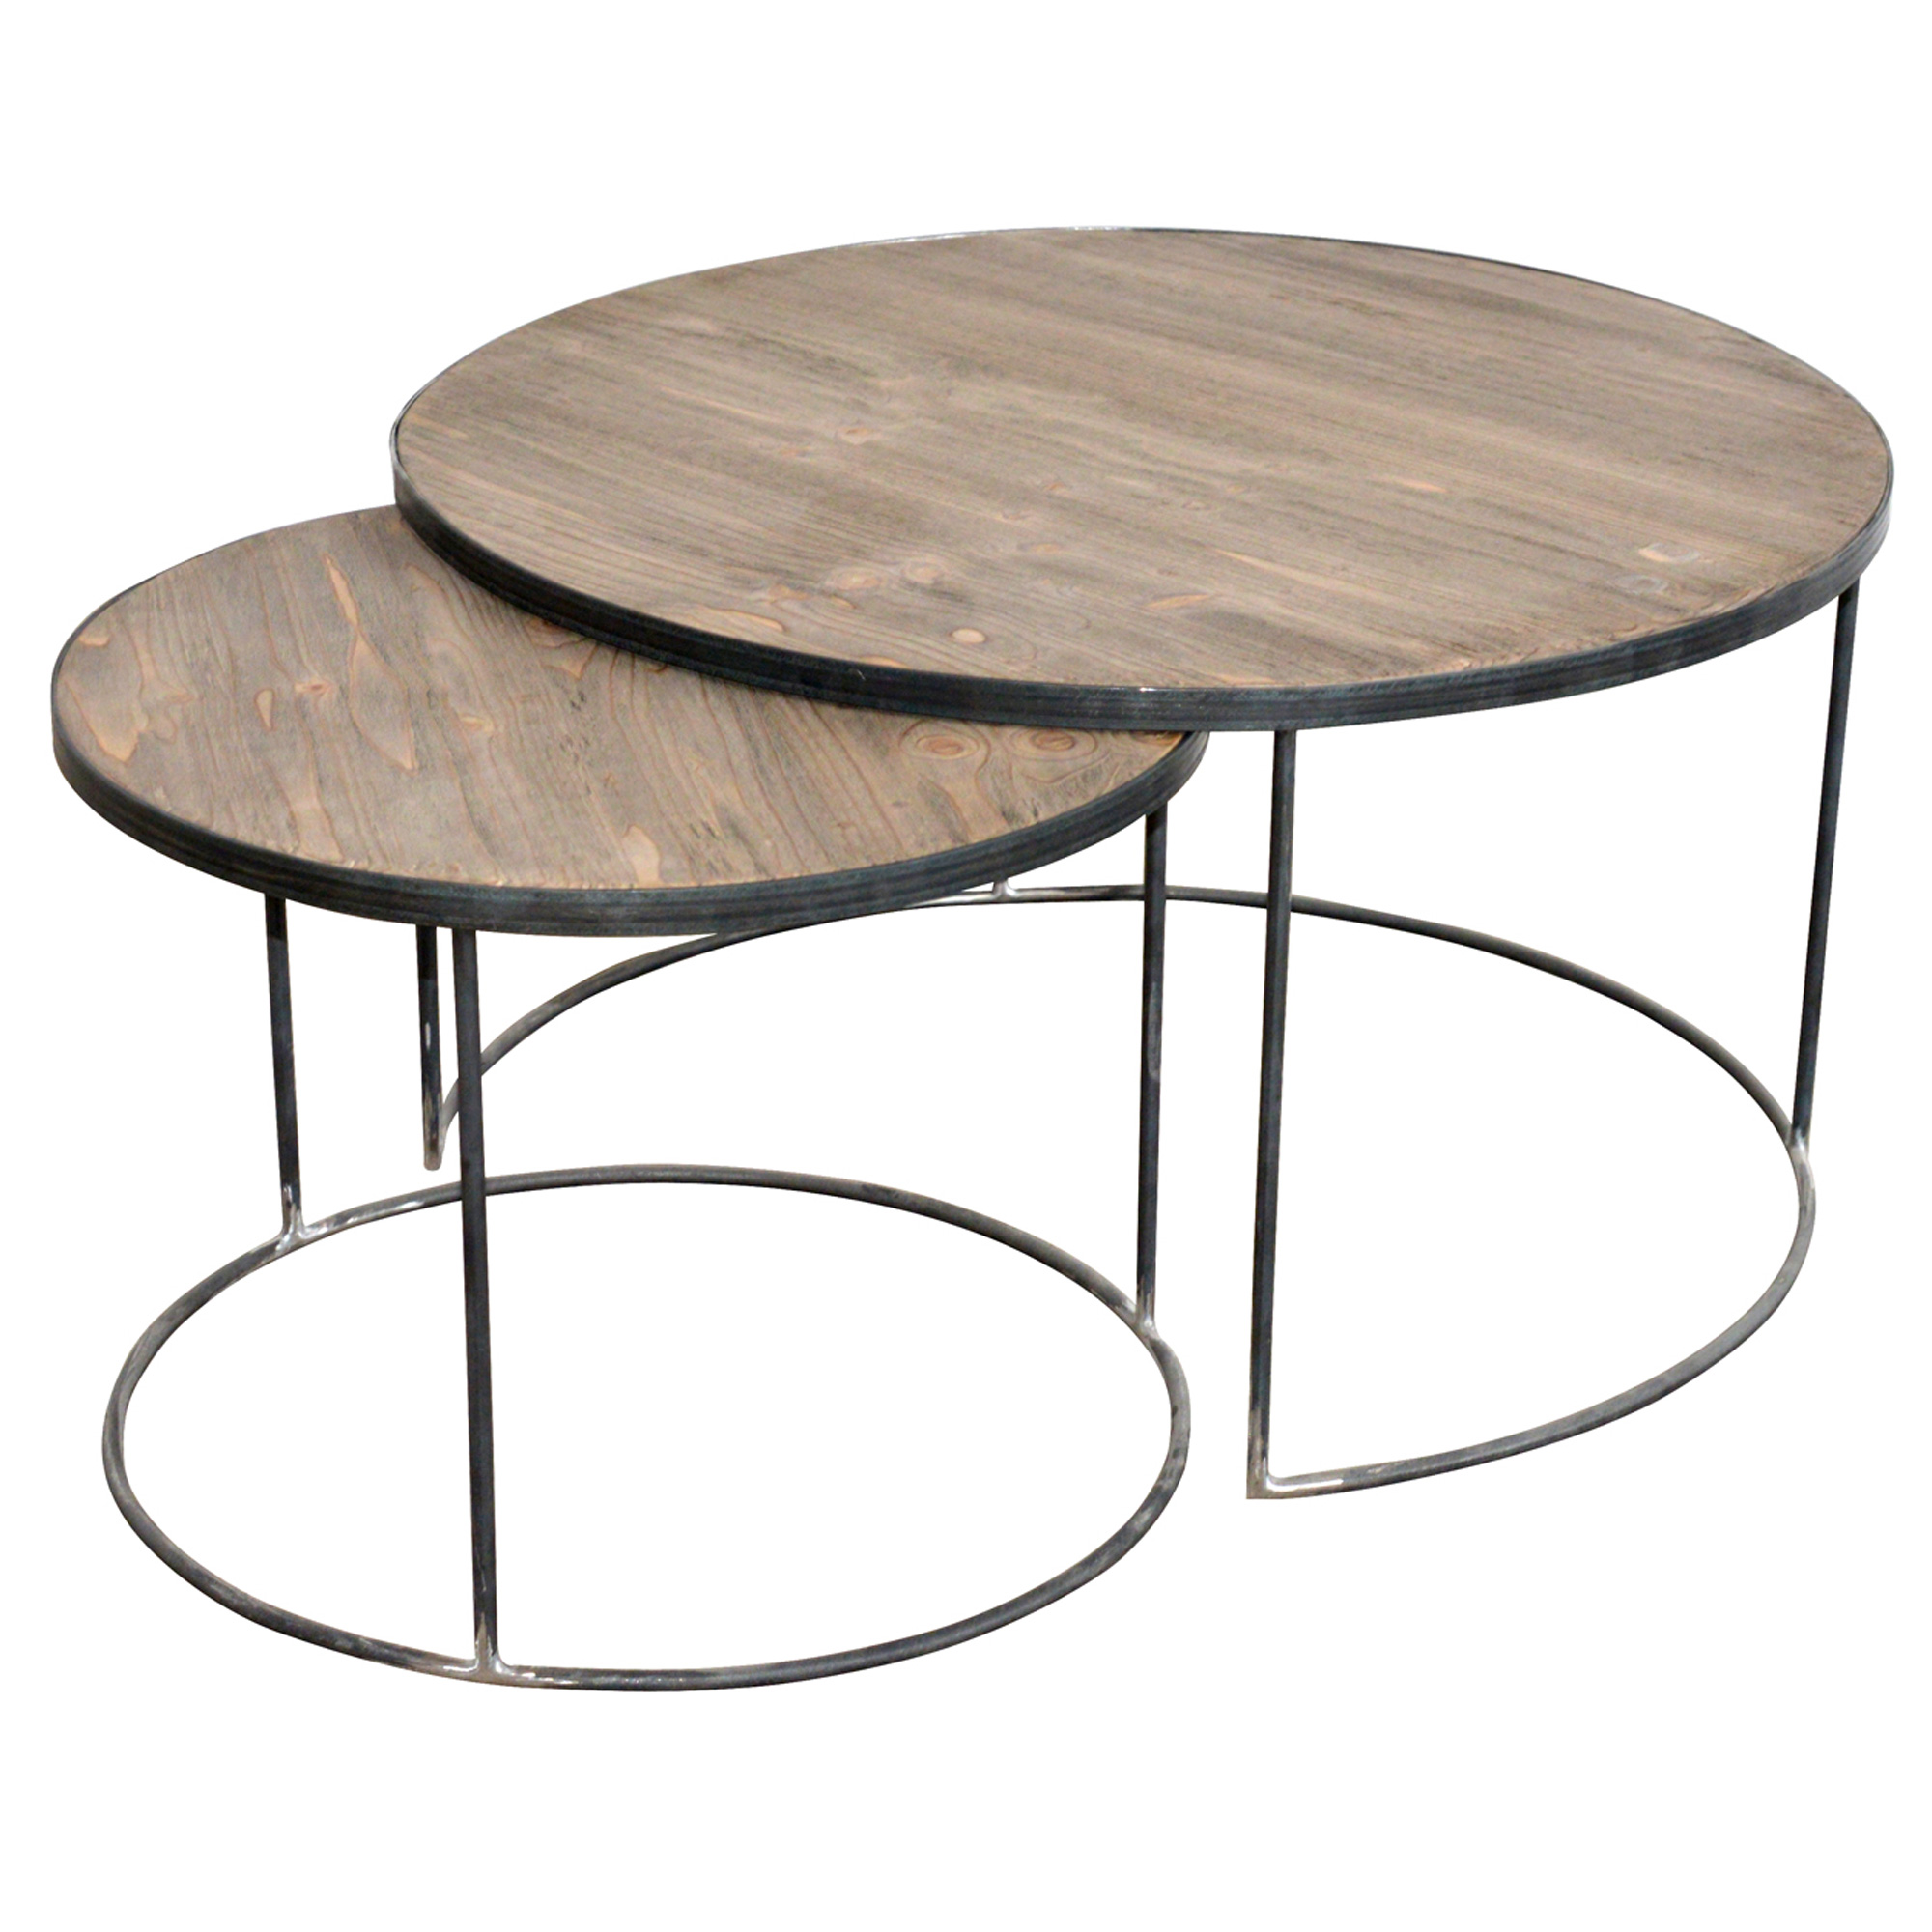 french set two round coffee tables banquet table setup end craigslist console what colour carpet goes with grey sofa living room furniture usa decorating ideas dark brown leather